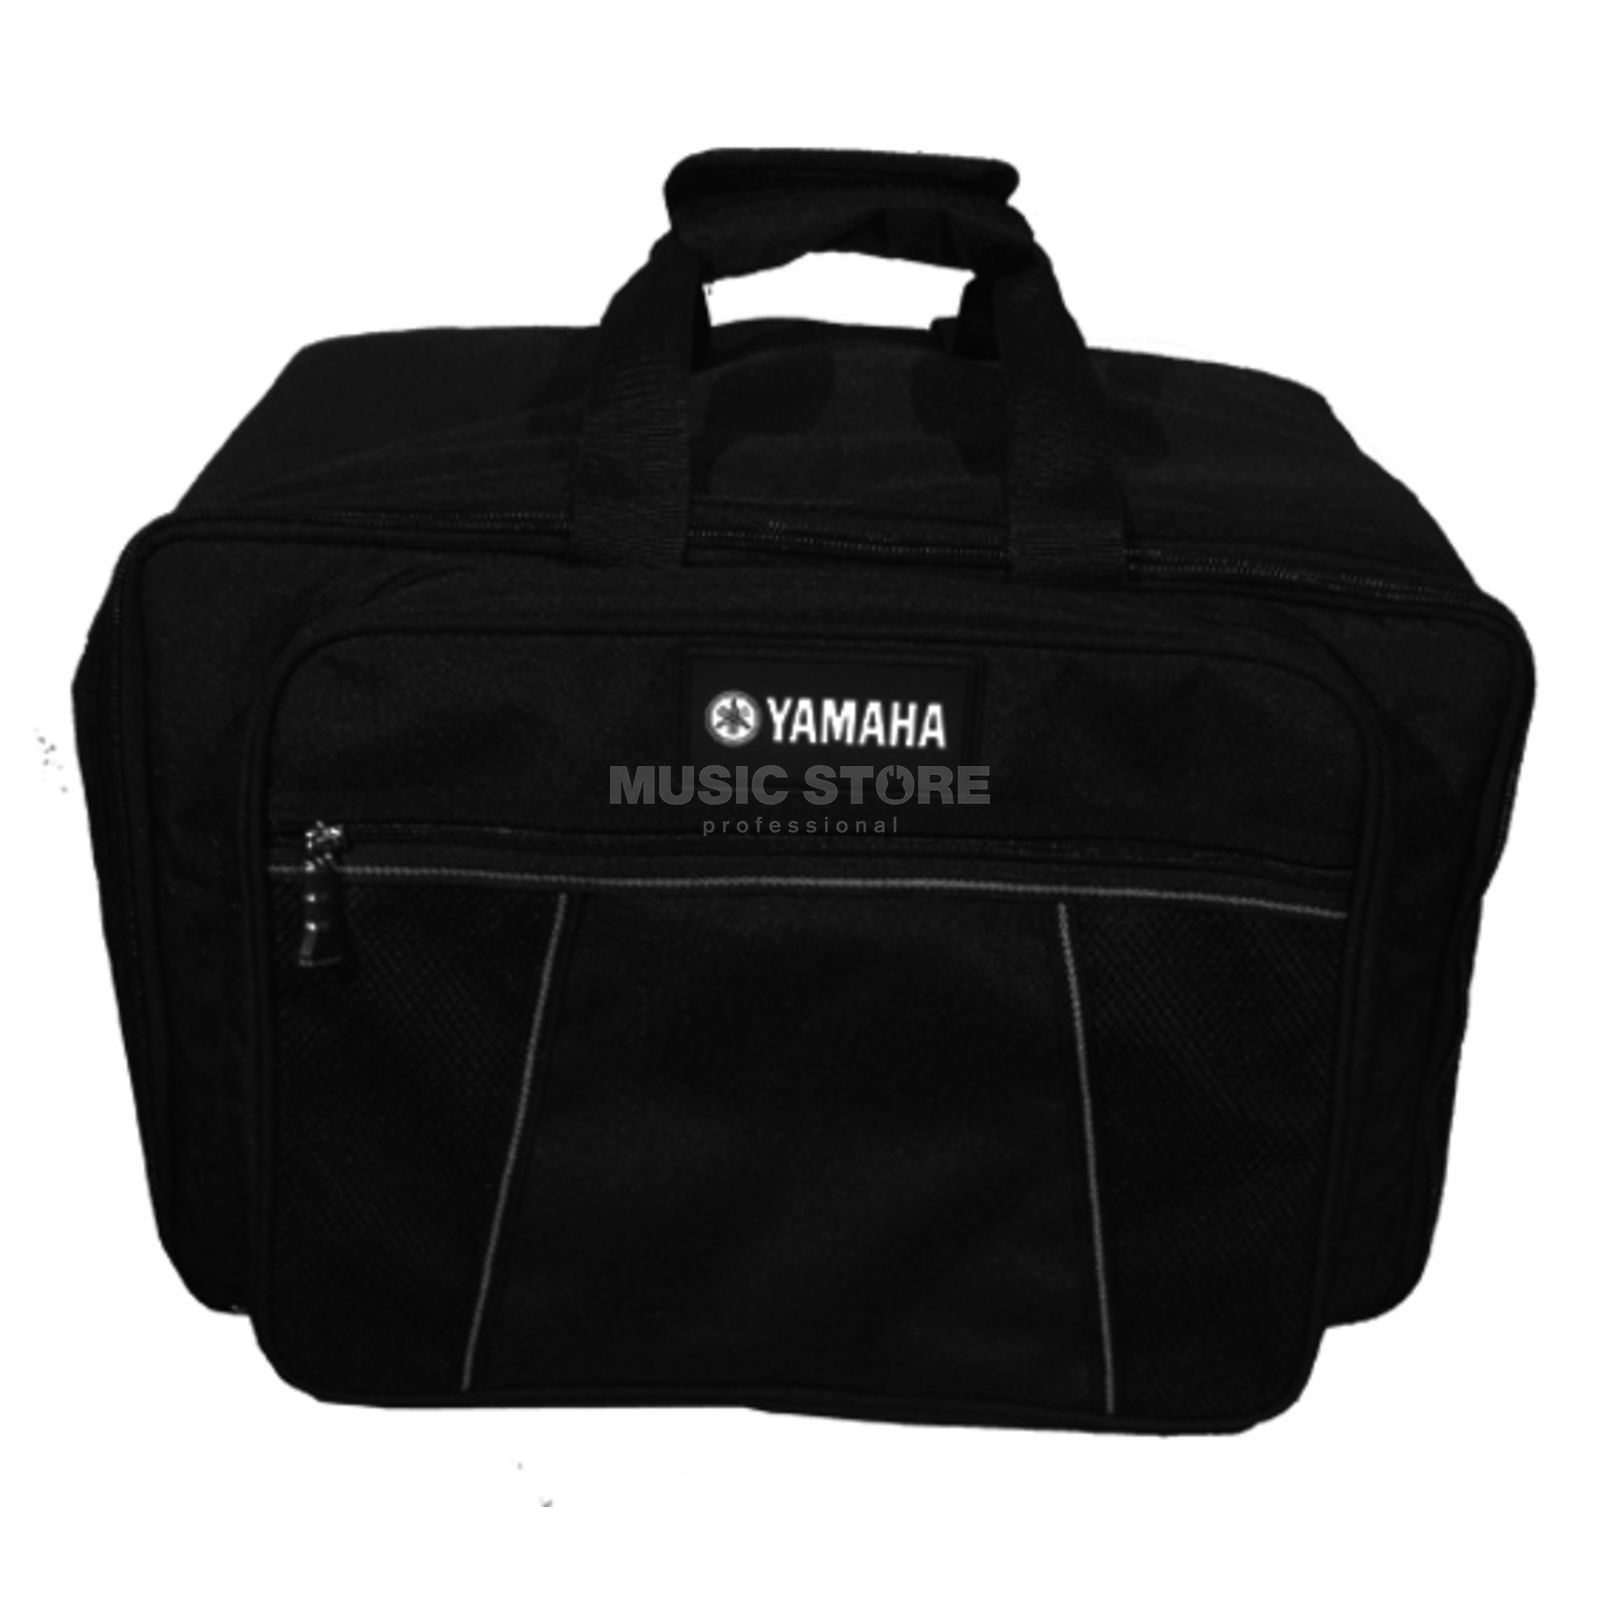 Yamaha Mixer Soft Case EMx - Series for EMX212S, EMX312SC and EMX512SC Produktbillede